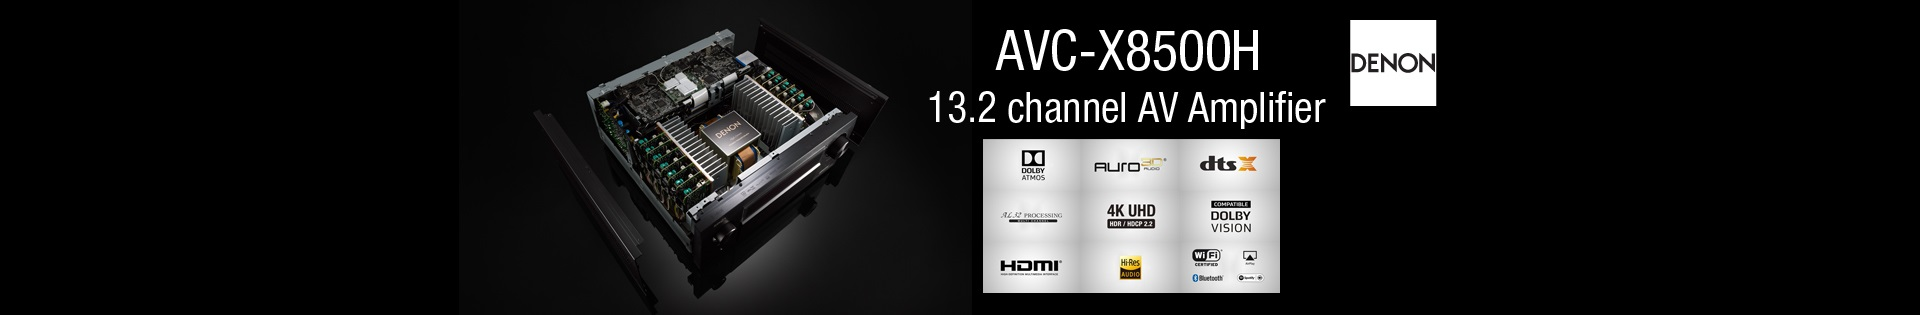 New 13.2 Channel AVR